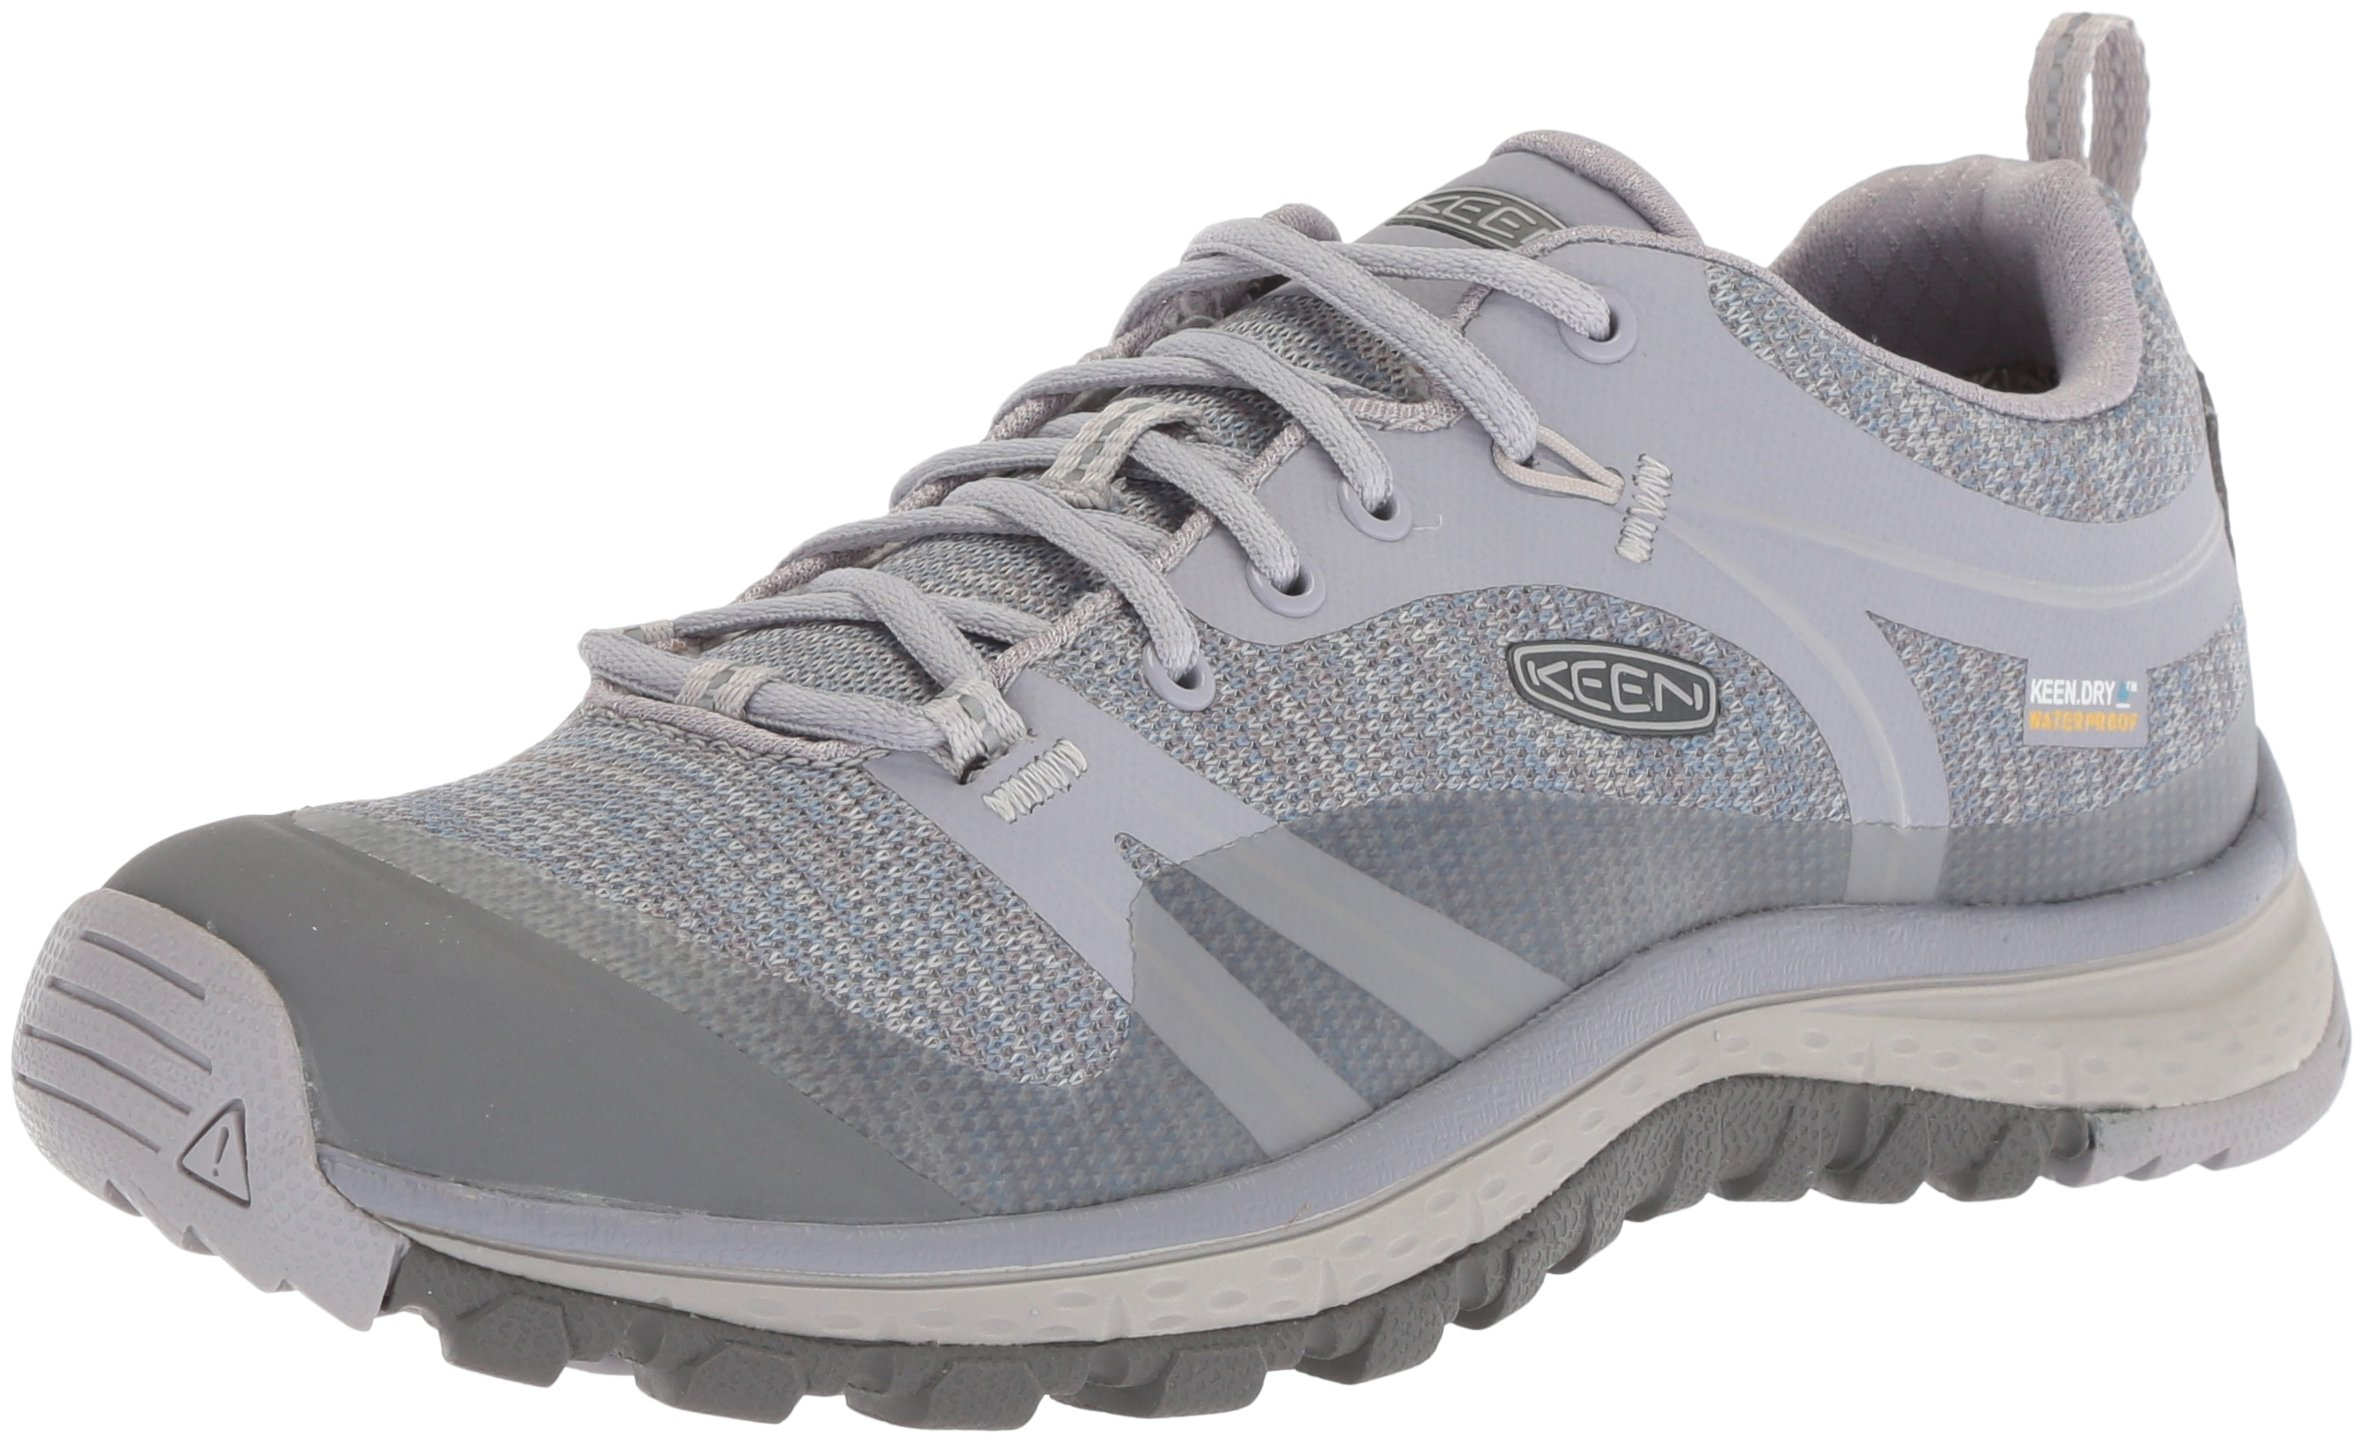 KEEN Women's Terradora WP-W Hiking Shoe, Dapple Grey/Vapor, 7 M US